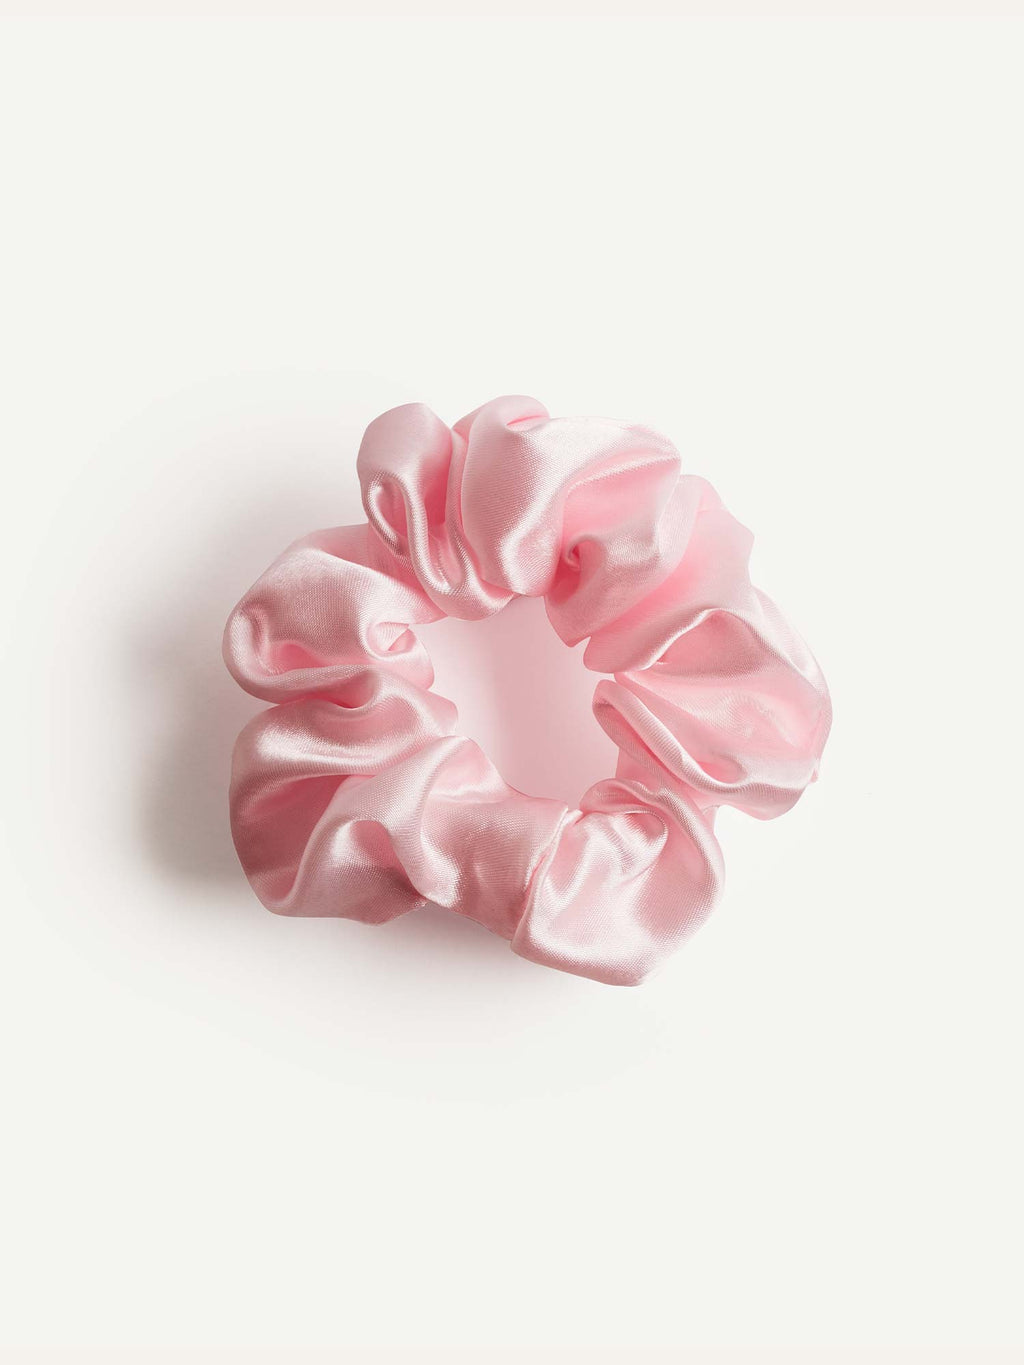 Luxy Hair - Snag-Free Satin Scrunchie Set